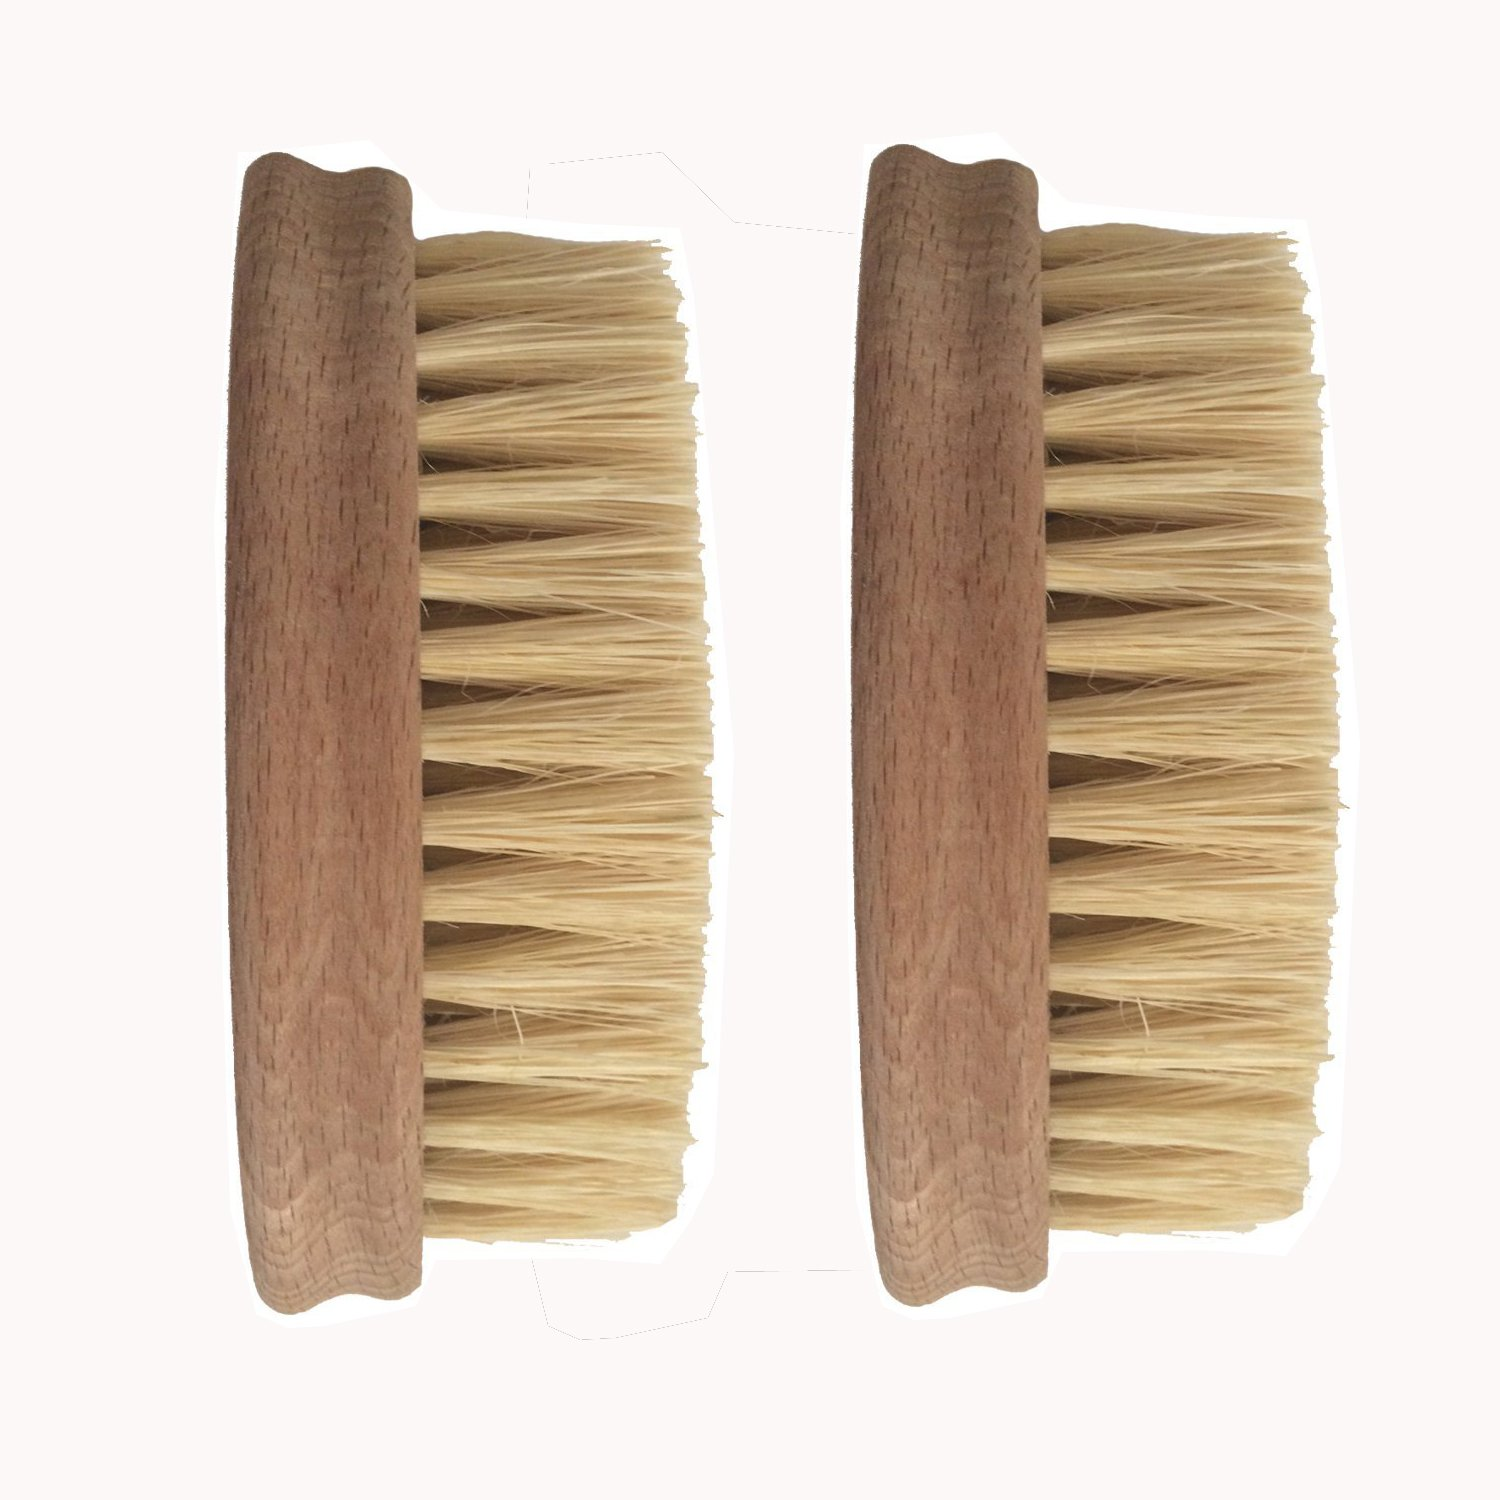 Vegetable Brush - Made from All Natural Bamboo and Palm Fibers - Scrub and clean carrots, potatoes, corn, beets etc. (Double Pack)